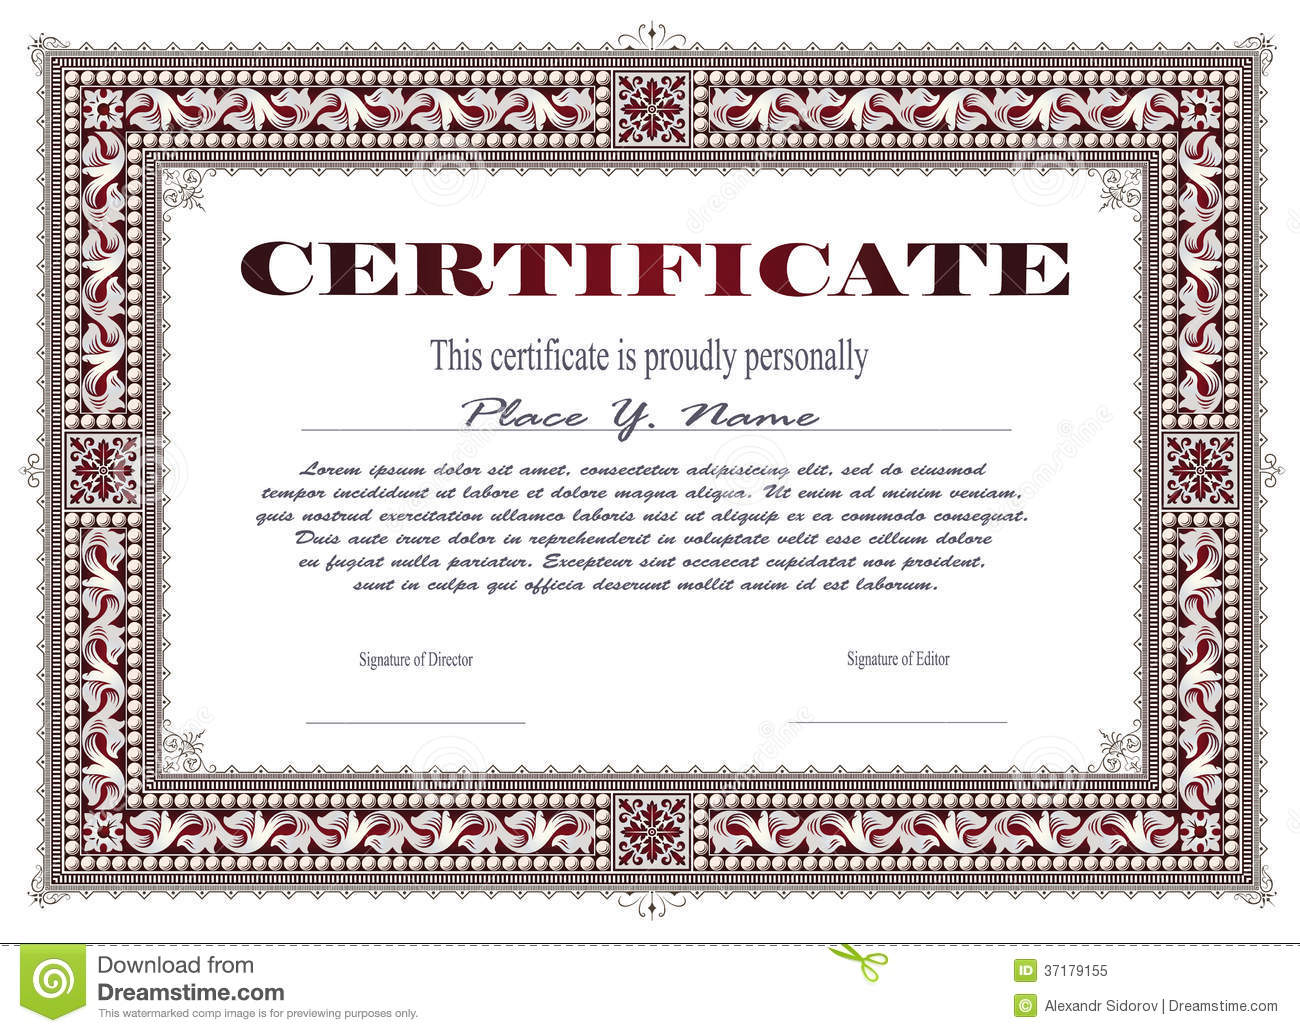 Certificate template stock vector illustration of blank for Tefl certificate template